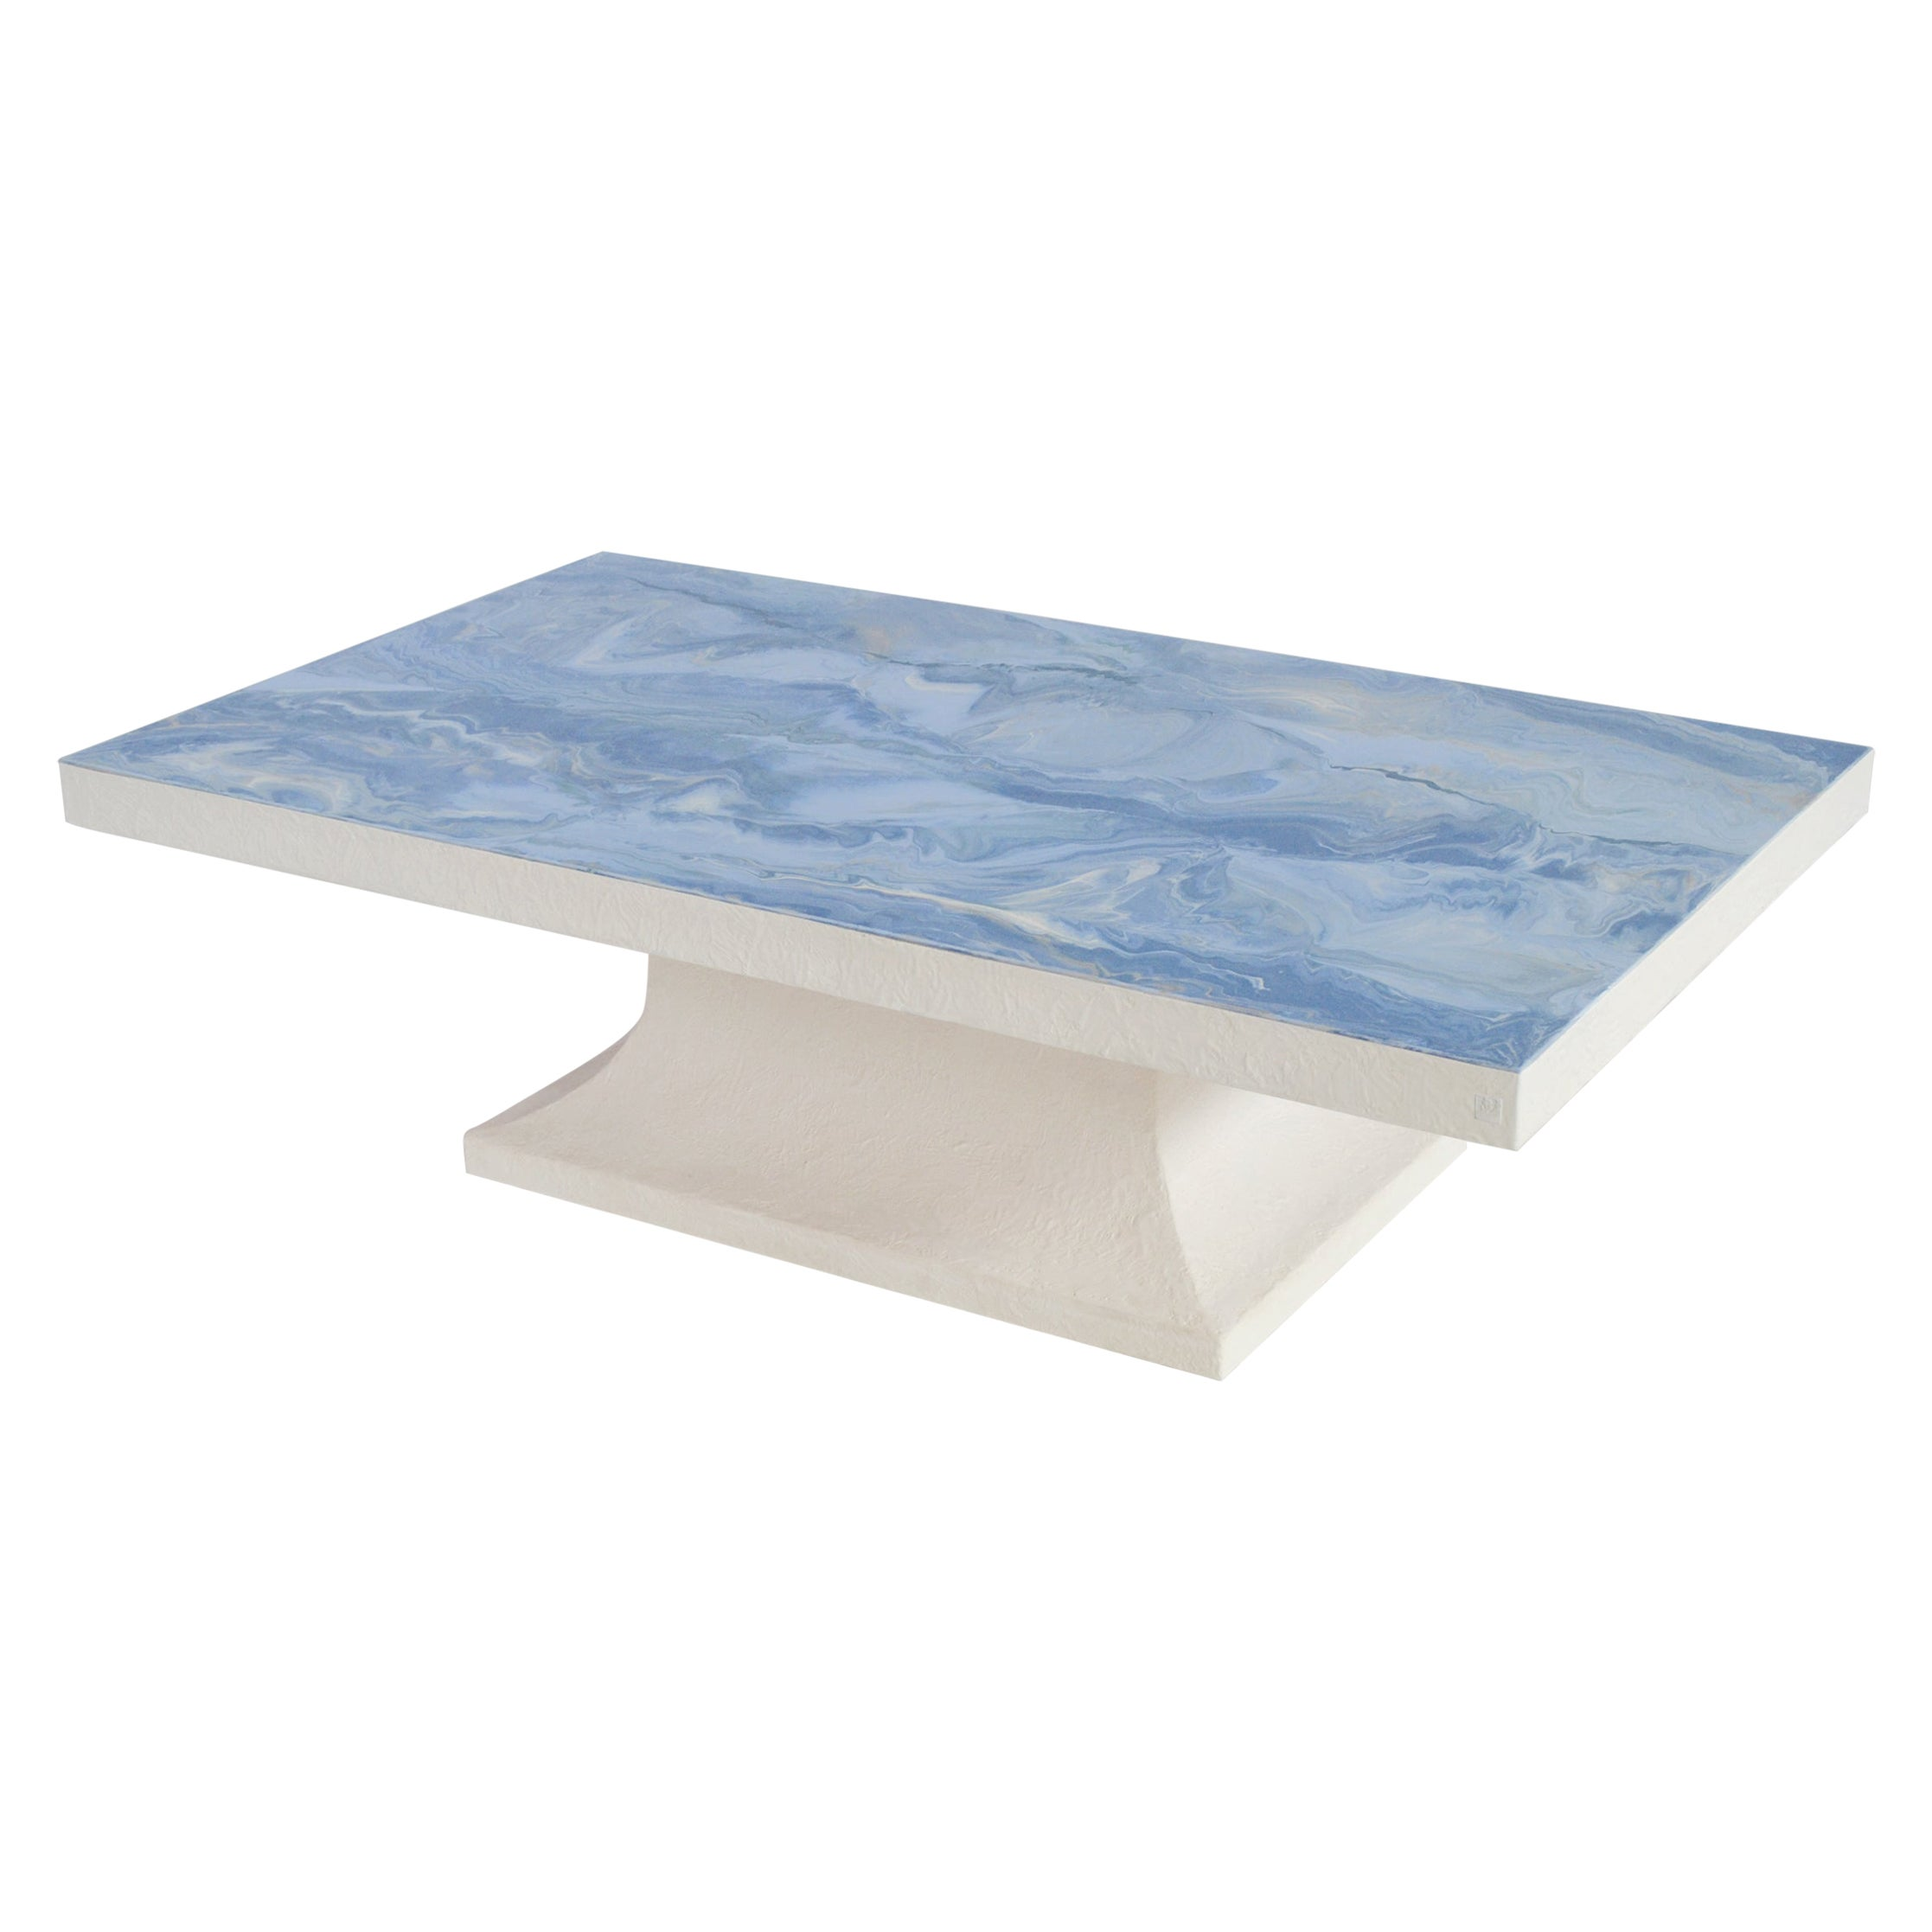 Light Blue Coffee Table Marbled Scagliola Decorated Top, White Wooden Base